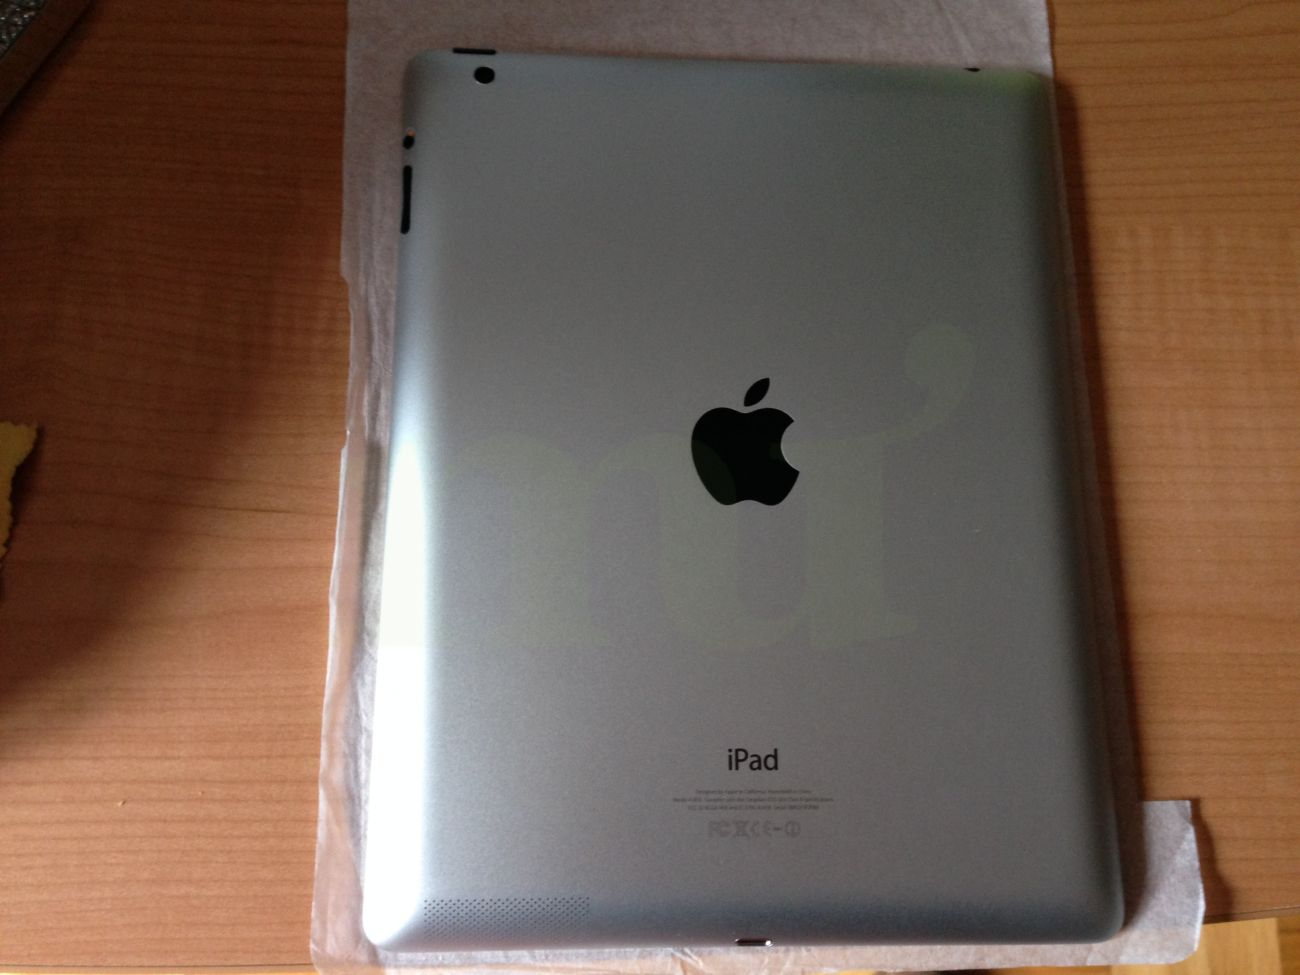 ipad ipad 4 generacion wifi 16gb | venta segunda mano apple